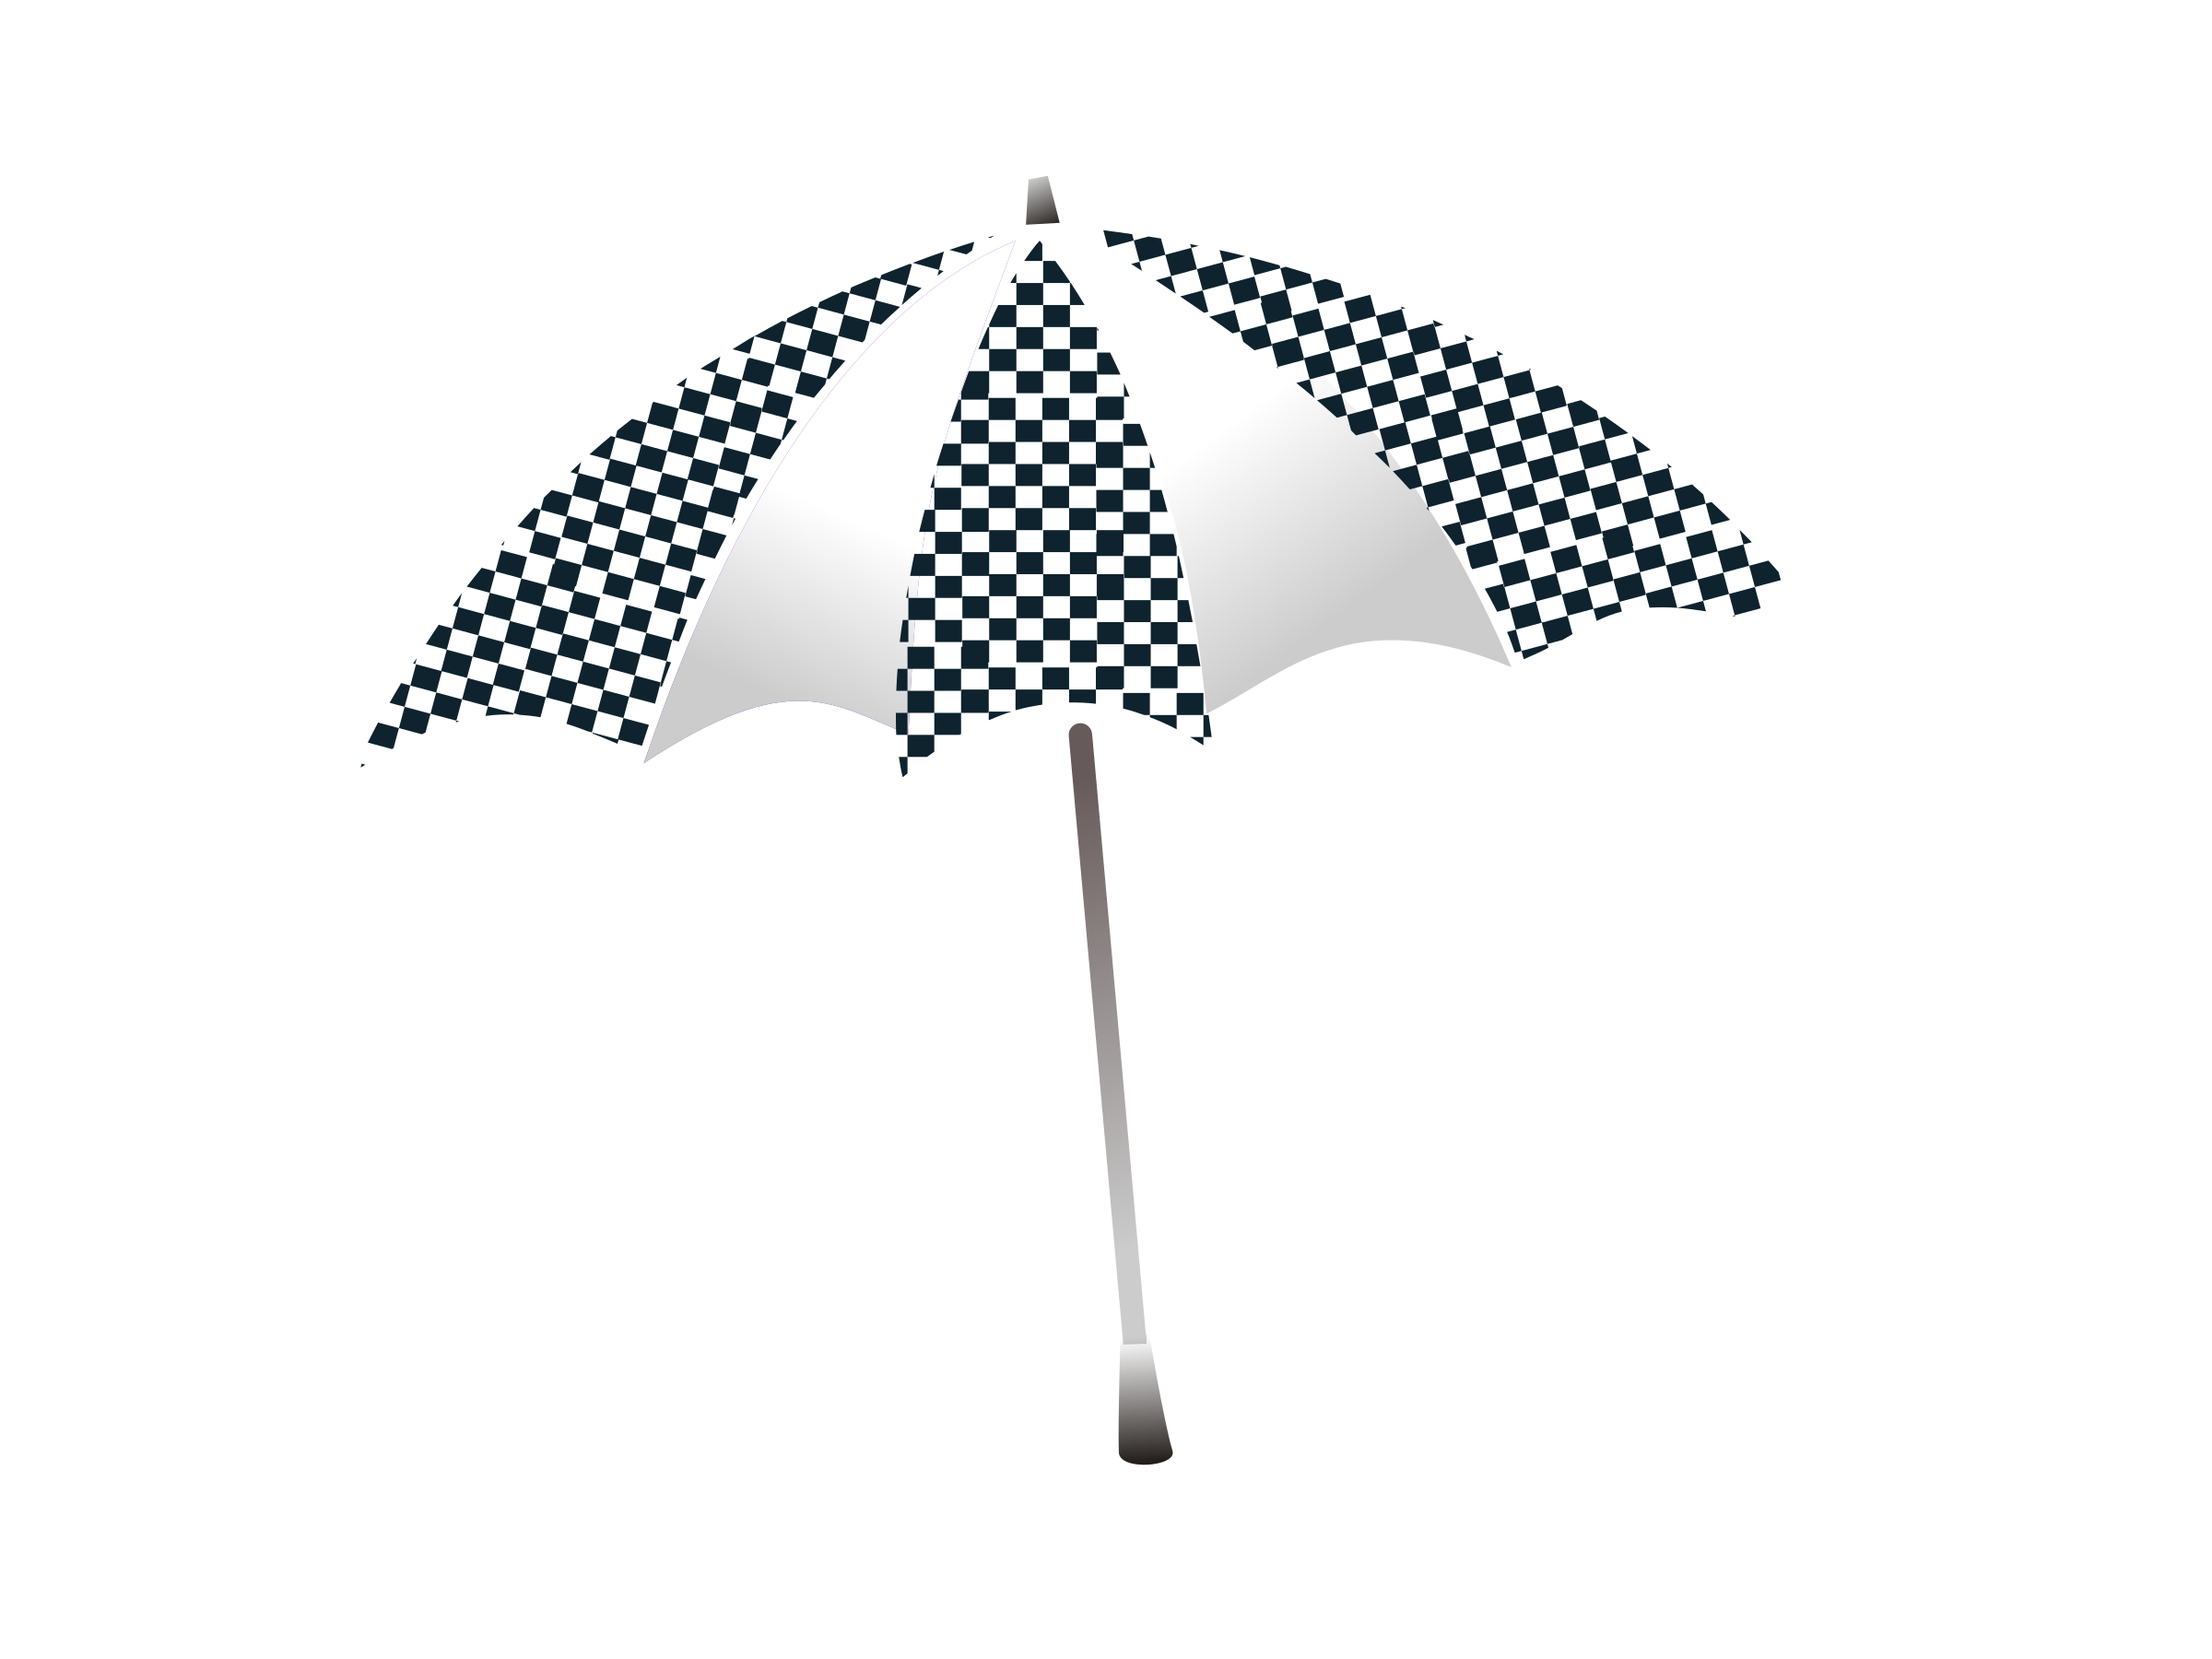 chequered umbrella by netalloy